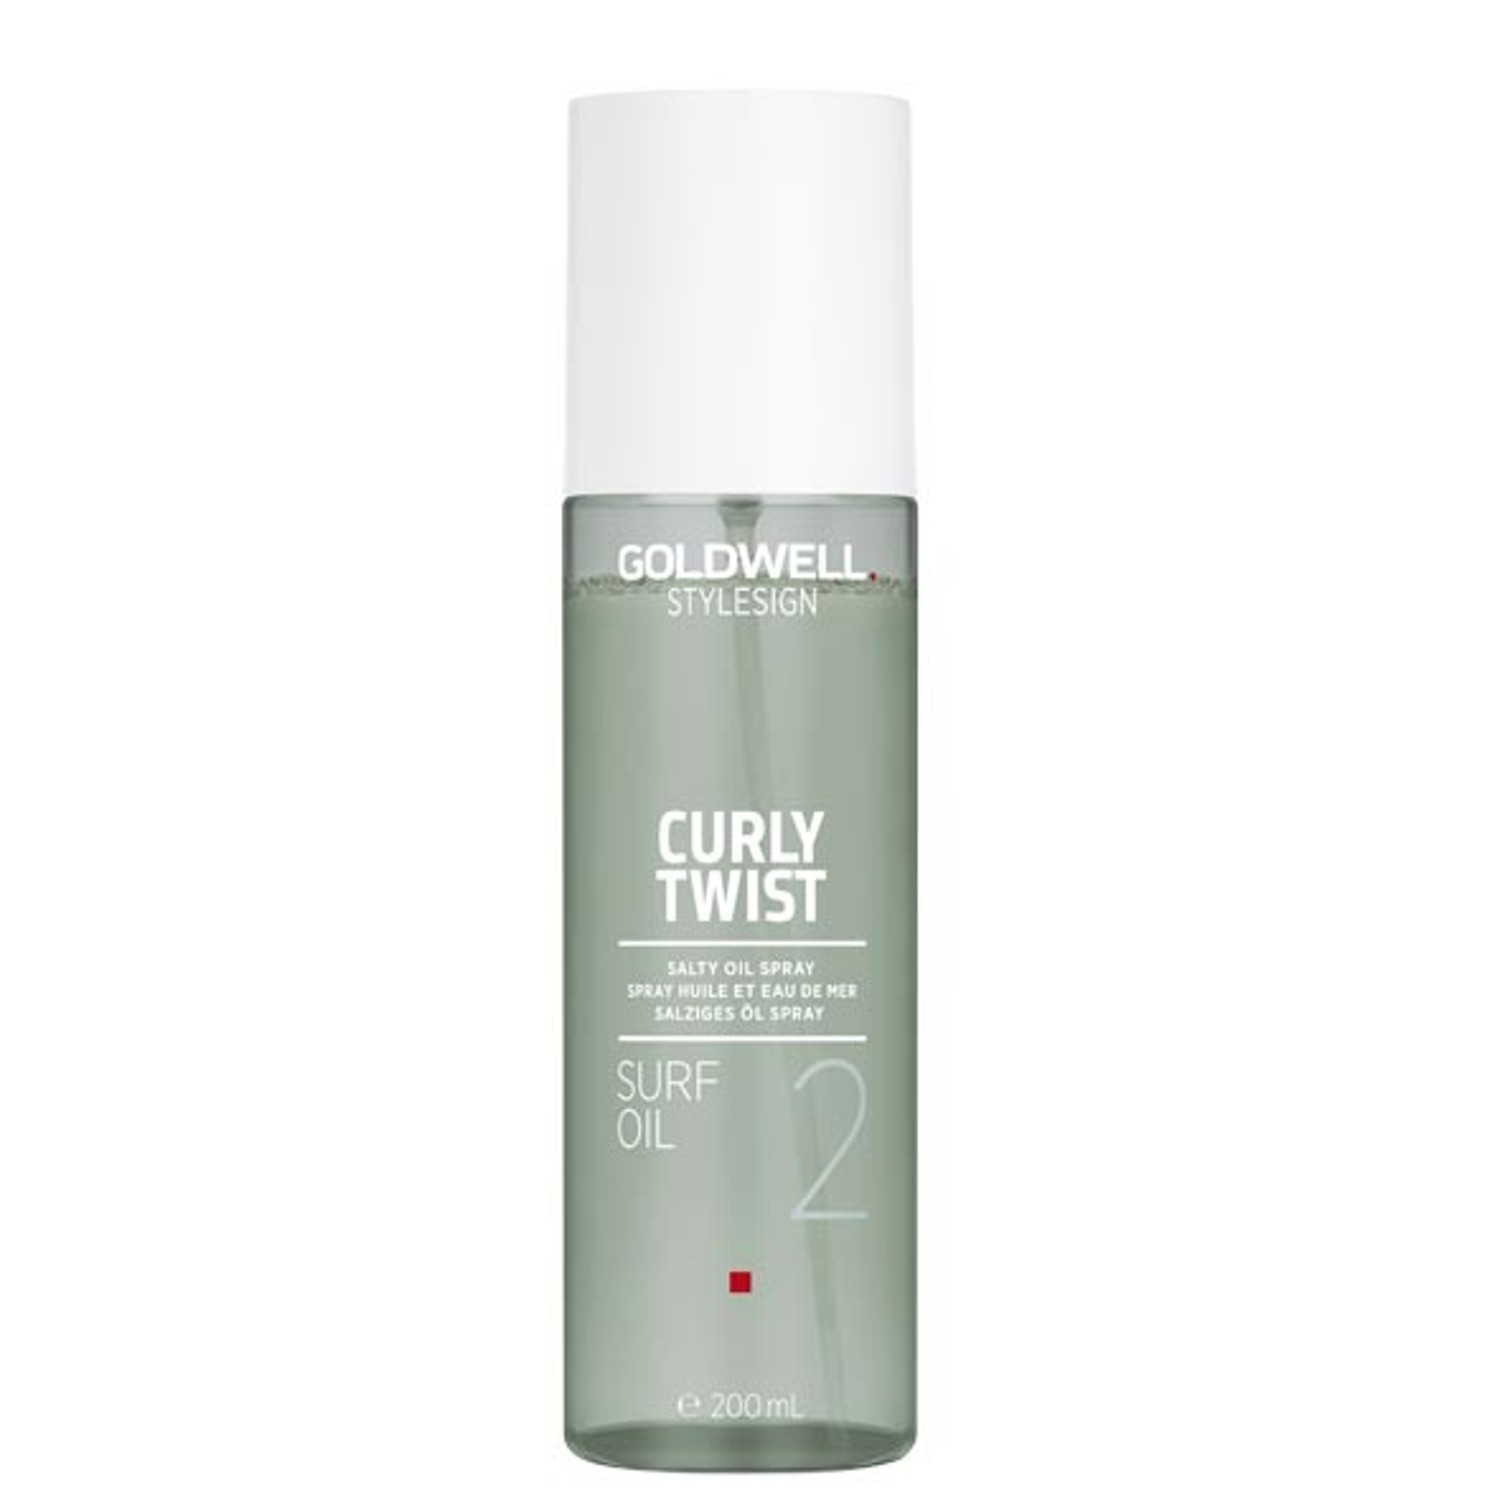 GOLDWELL Style Sign Curly Twist Surf Oil 200 ml